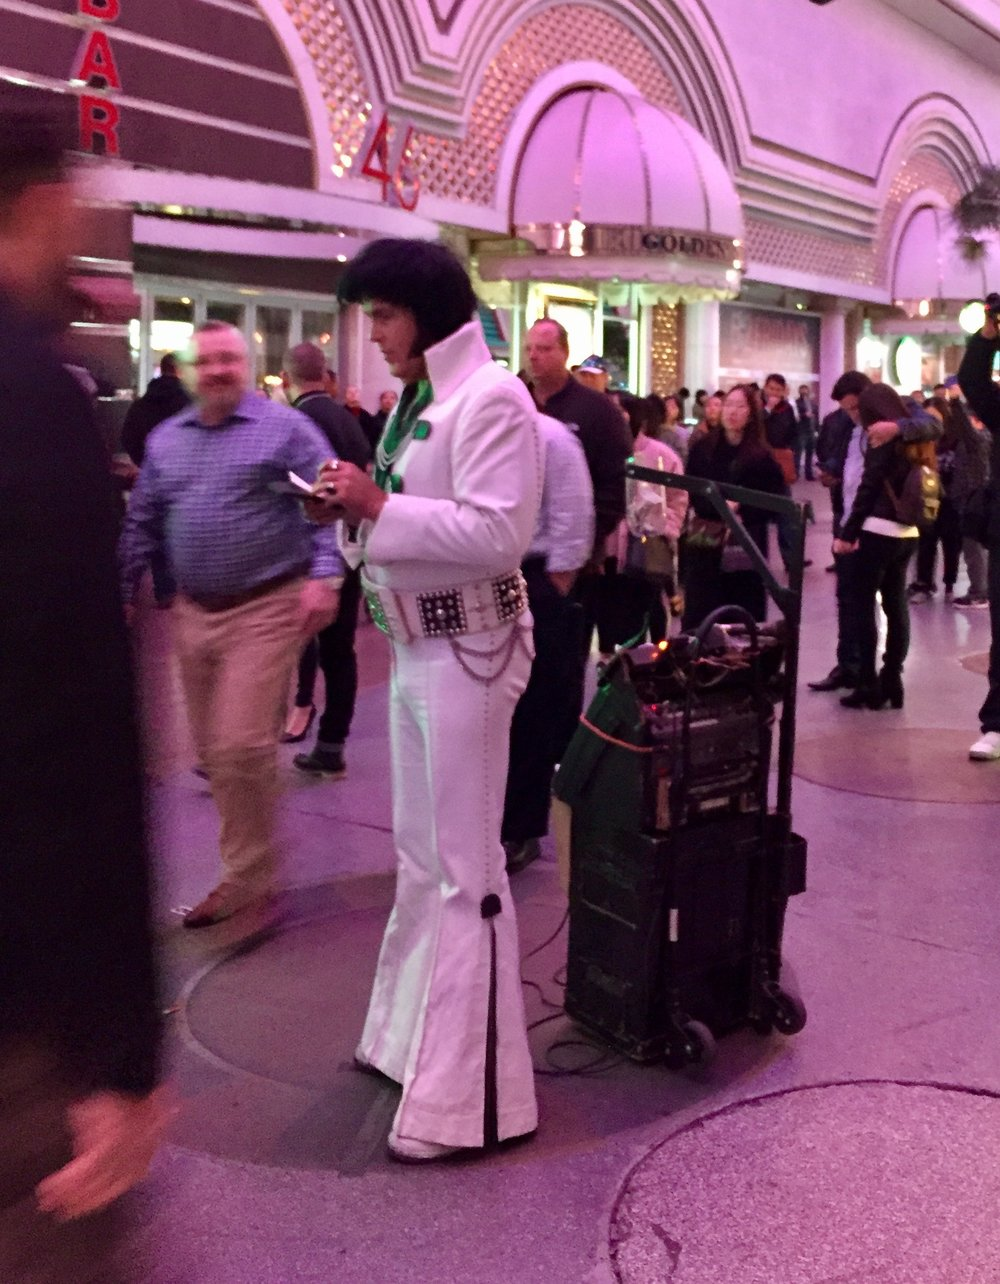 Elvis is everywhere in Vegas, especially at the Fremont experience, where I found three of them.